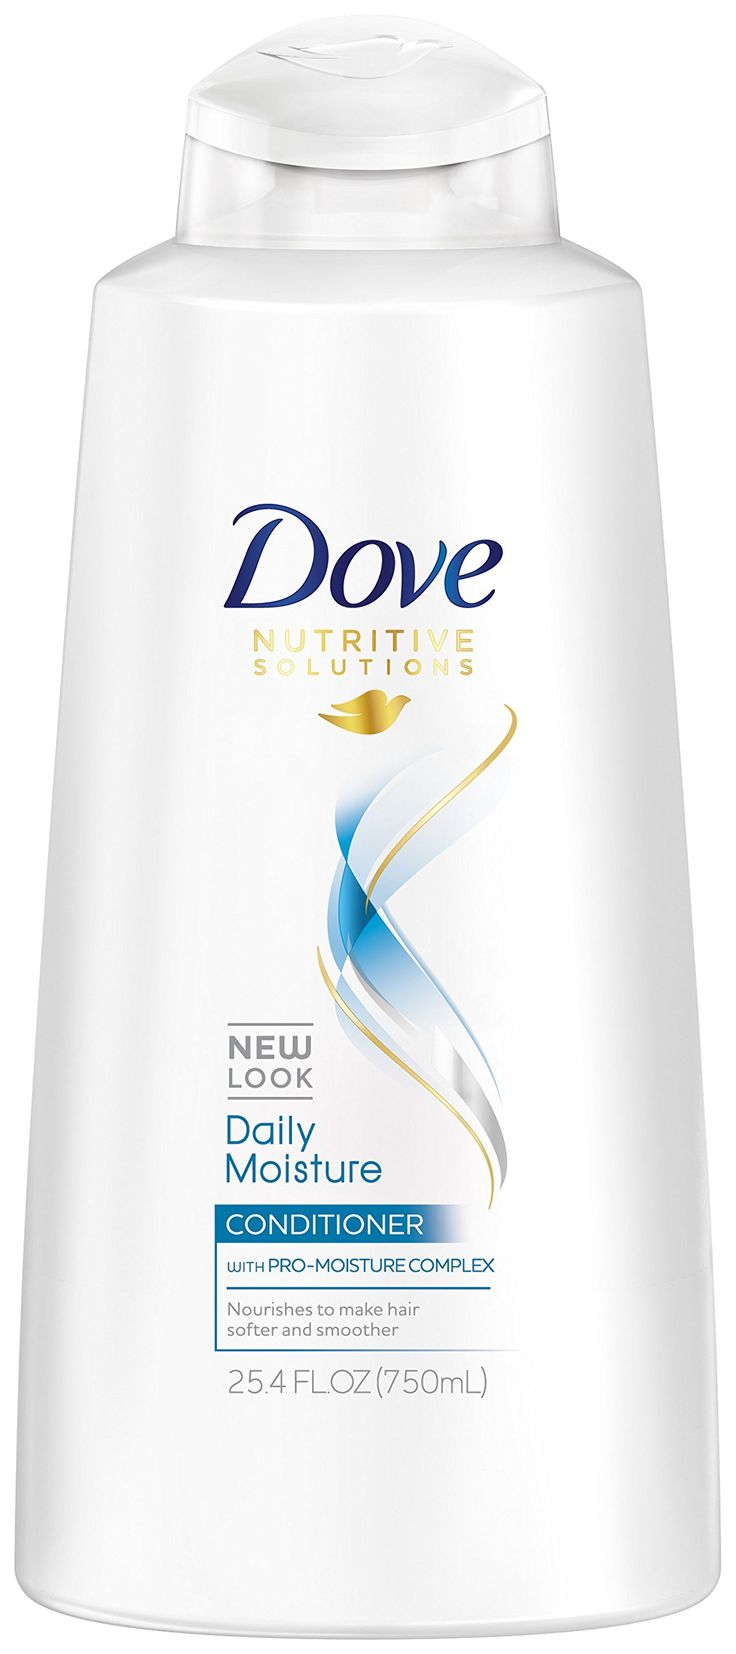 Dove Conditioner, Daily Moisture 25.4 oz